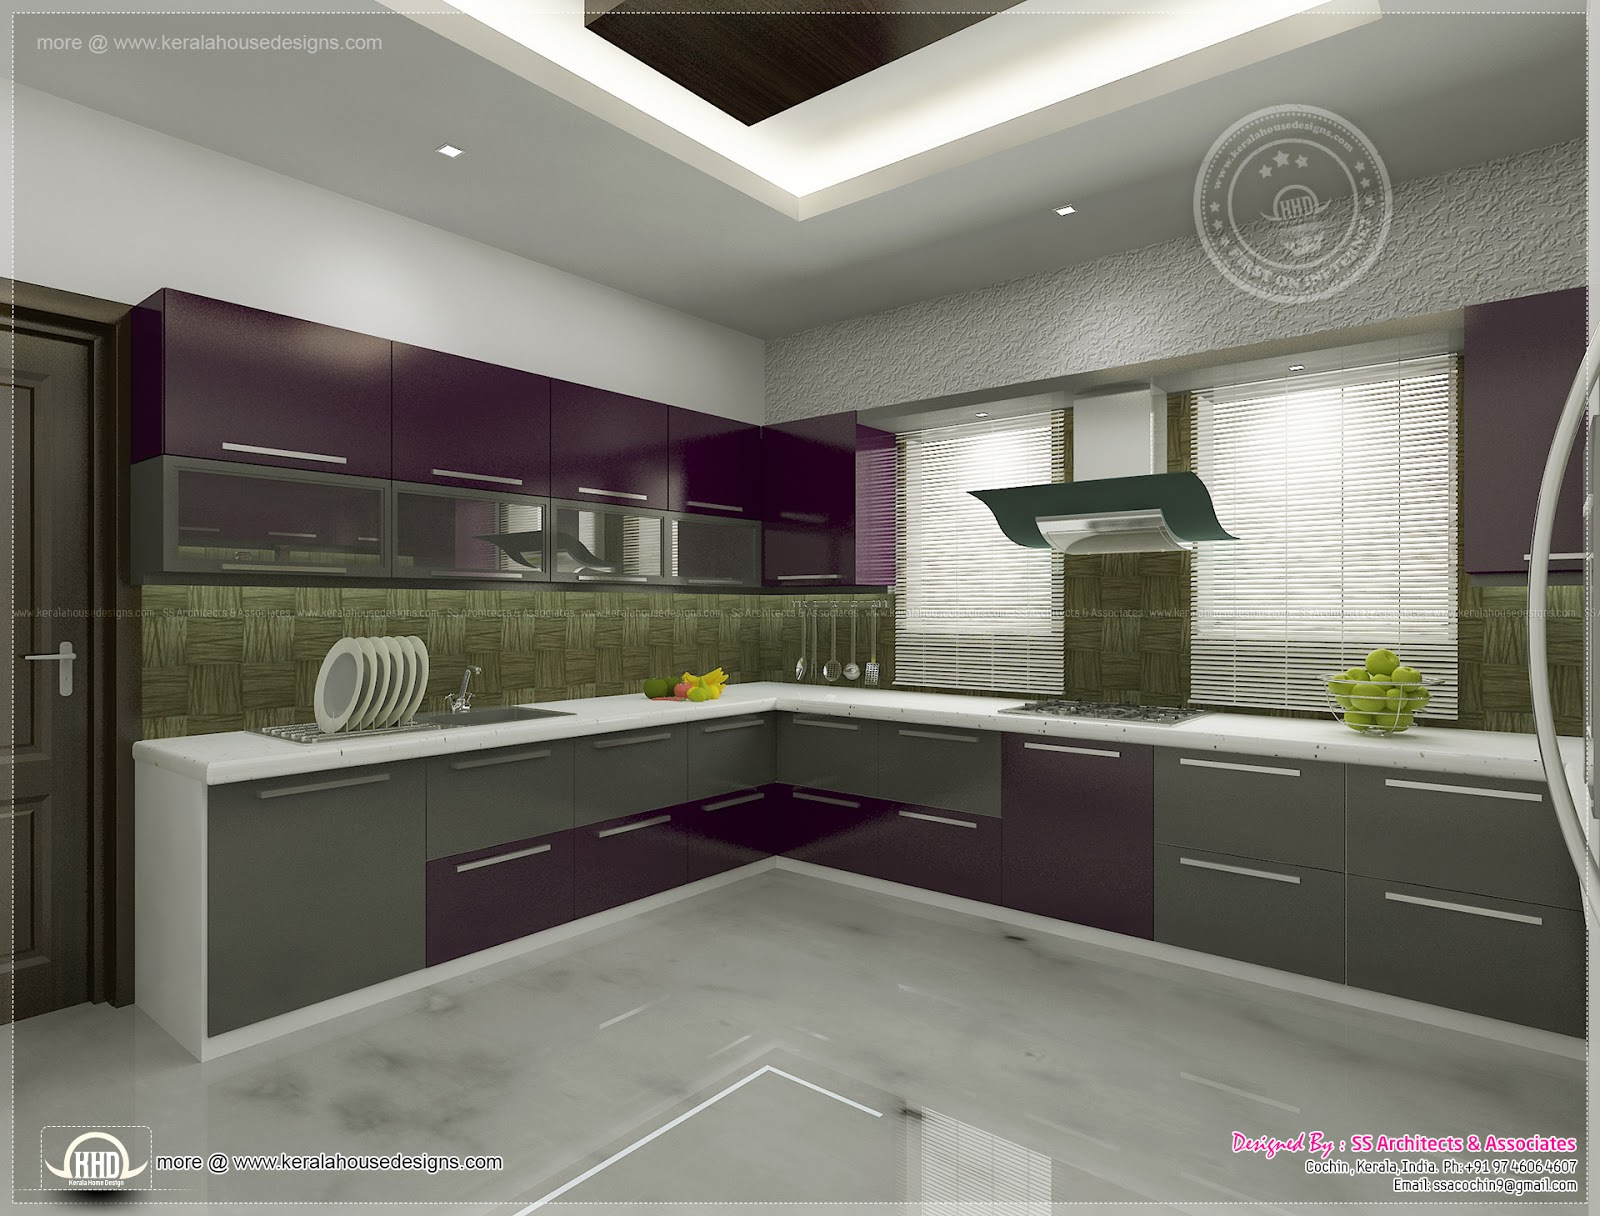 Kitchen interior views by ss architects cochin home for Kitchen room interior design